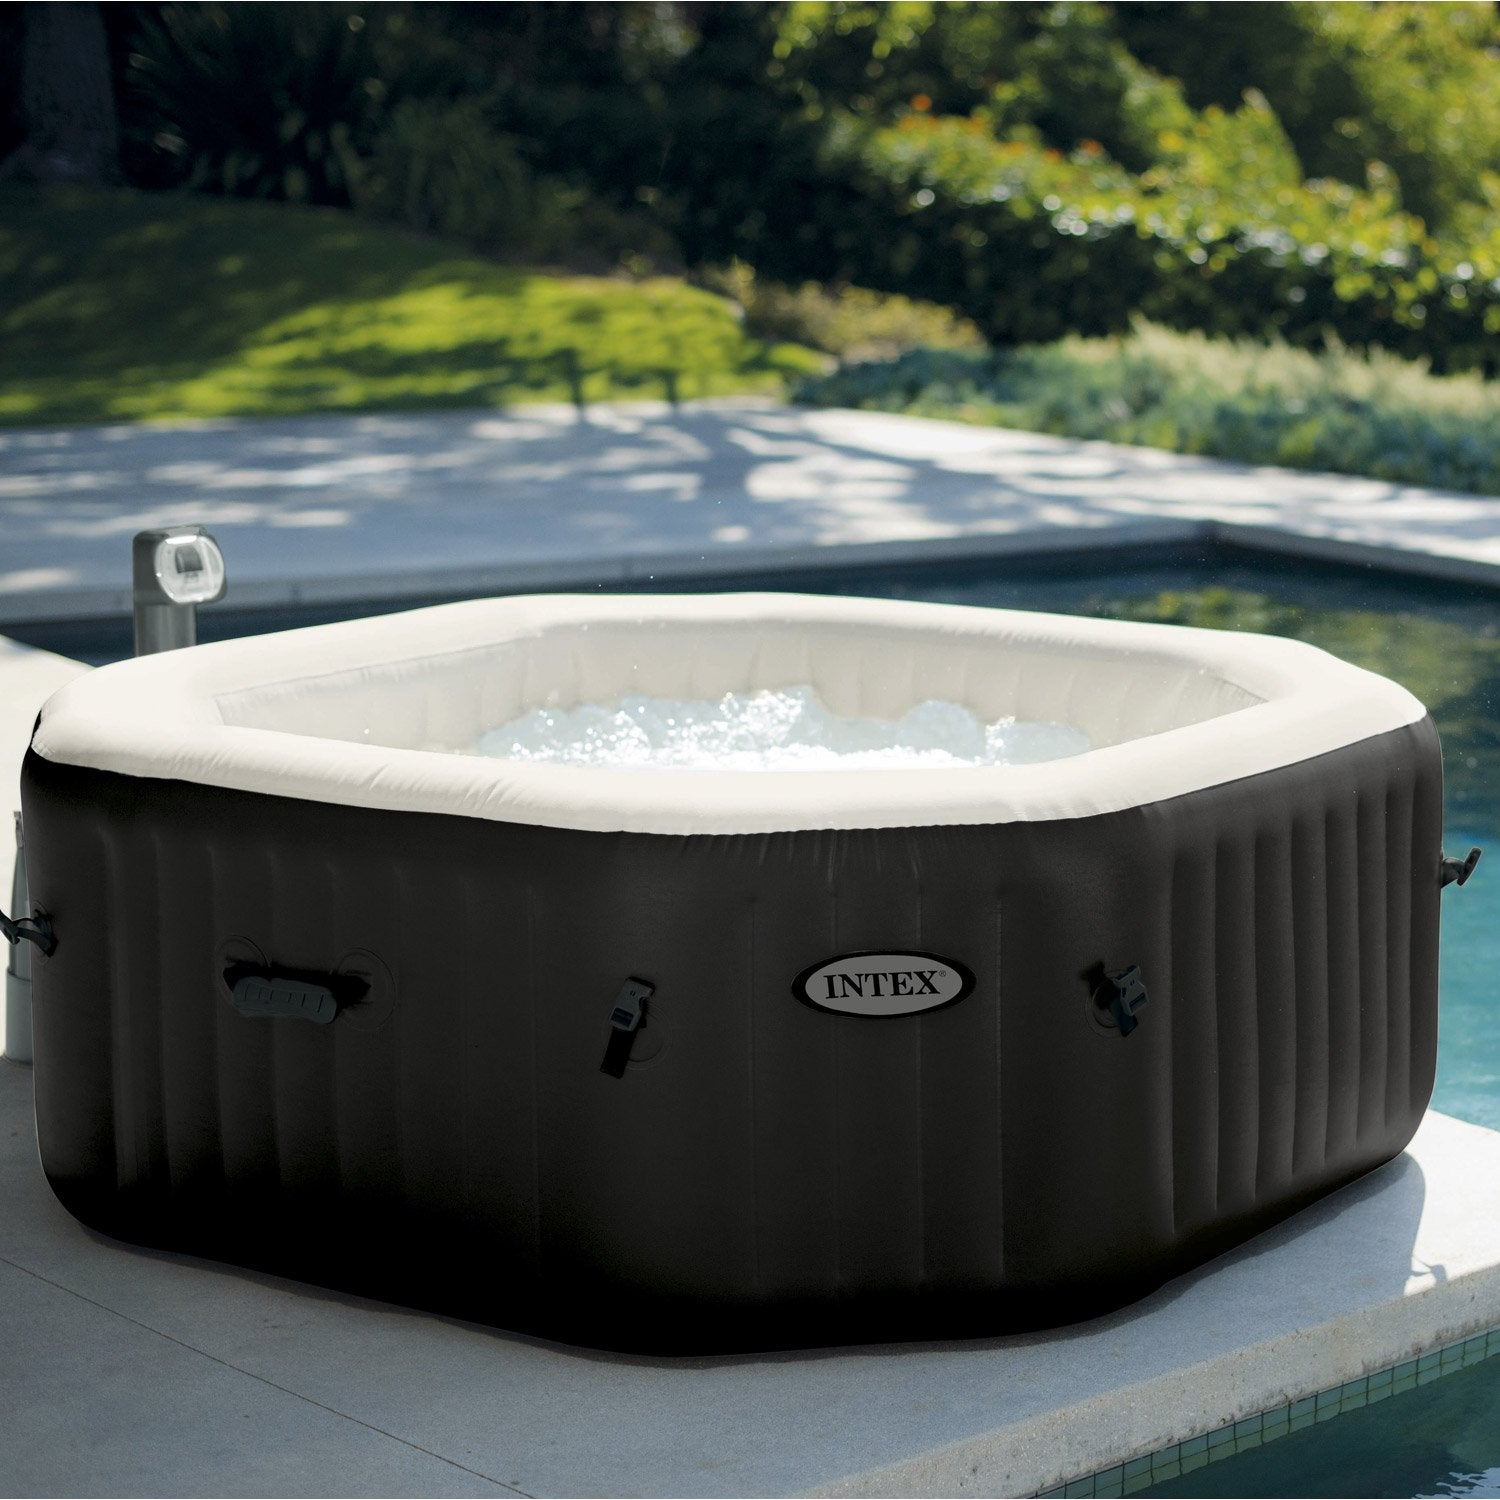 Spa gonflable intex a jets bulles st rilisation sel 4 places octogonale - Sel piscine leroy merlin ...